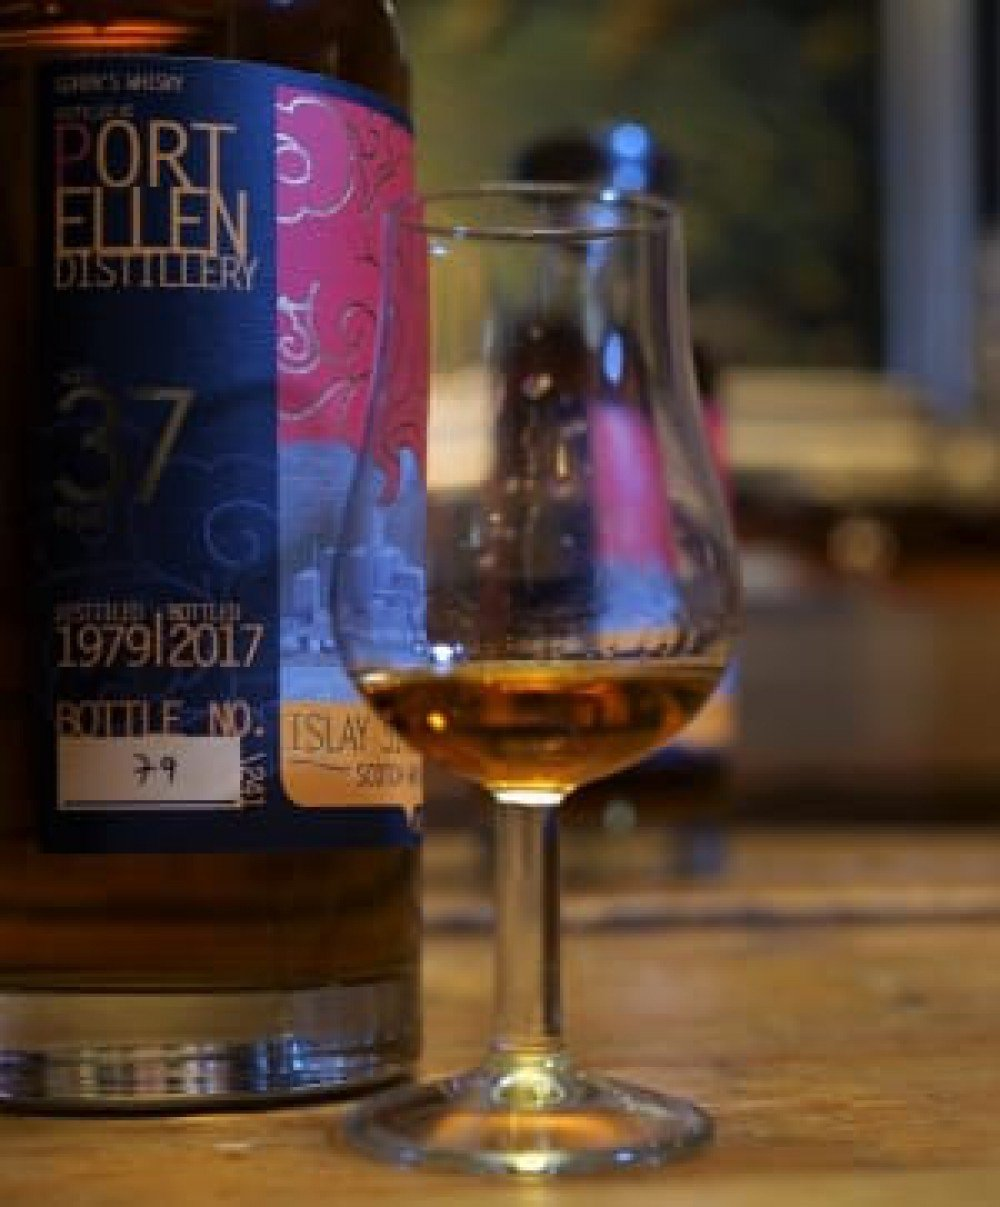 Tasting the Port Ellen 37 years Old Goren's whisky